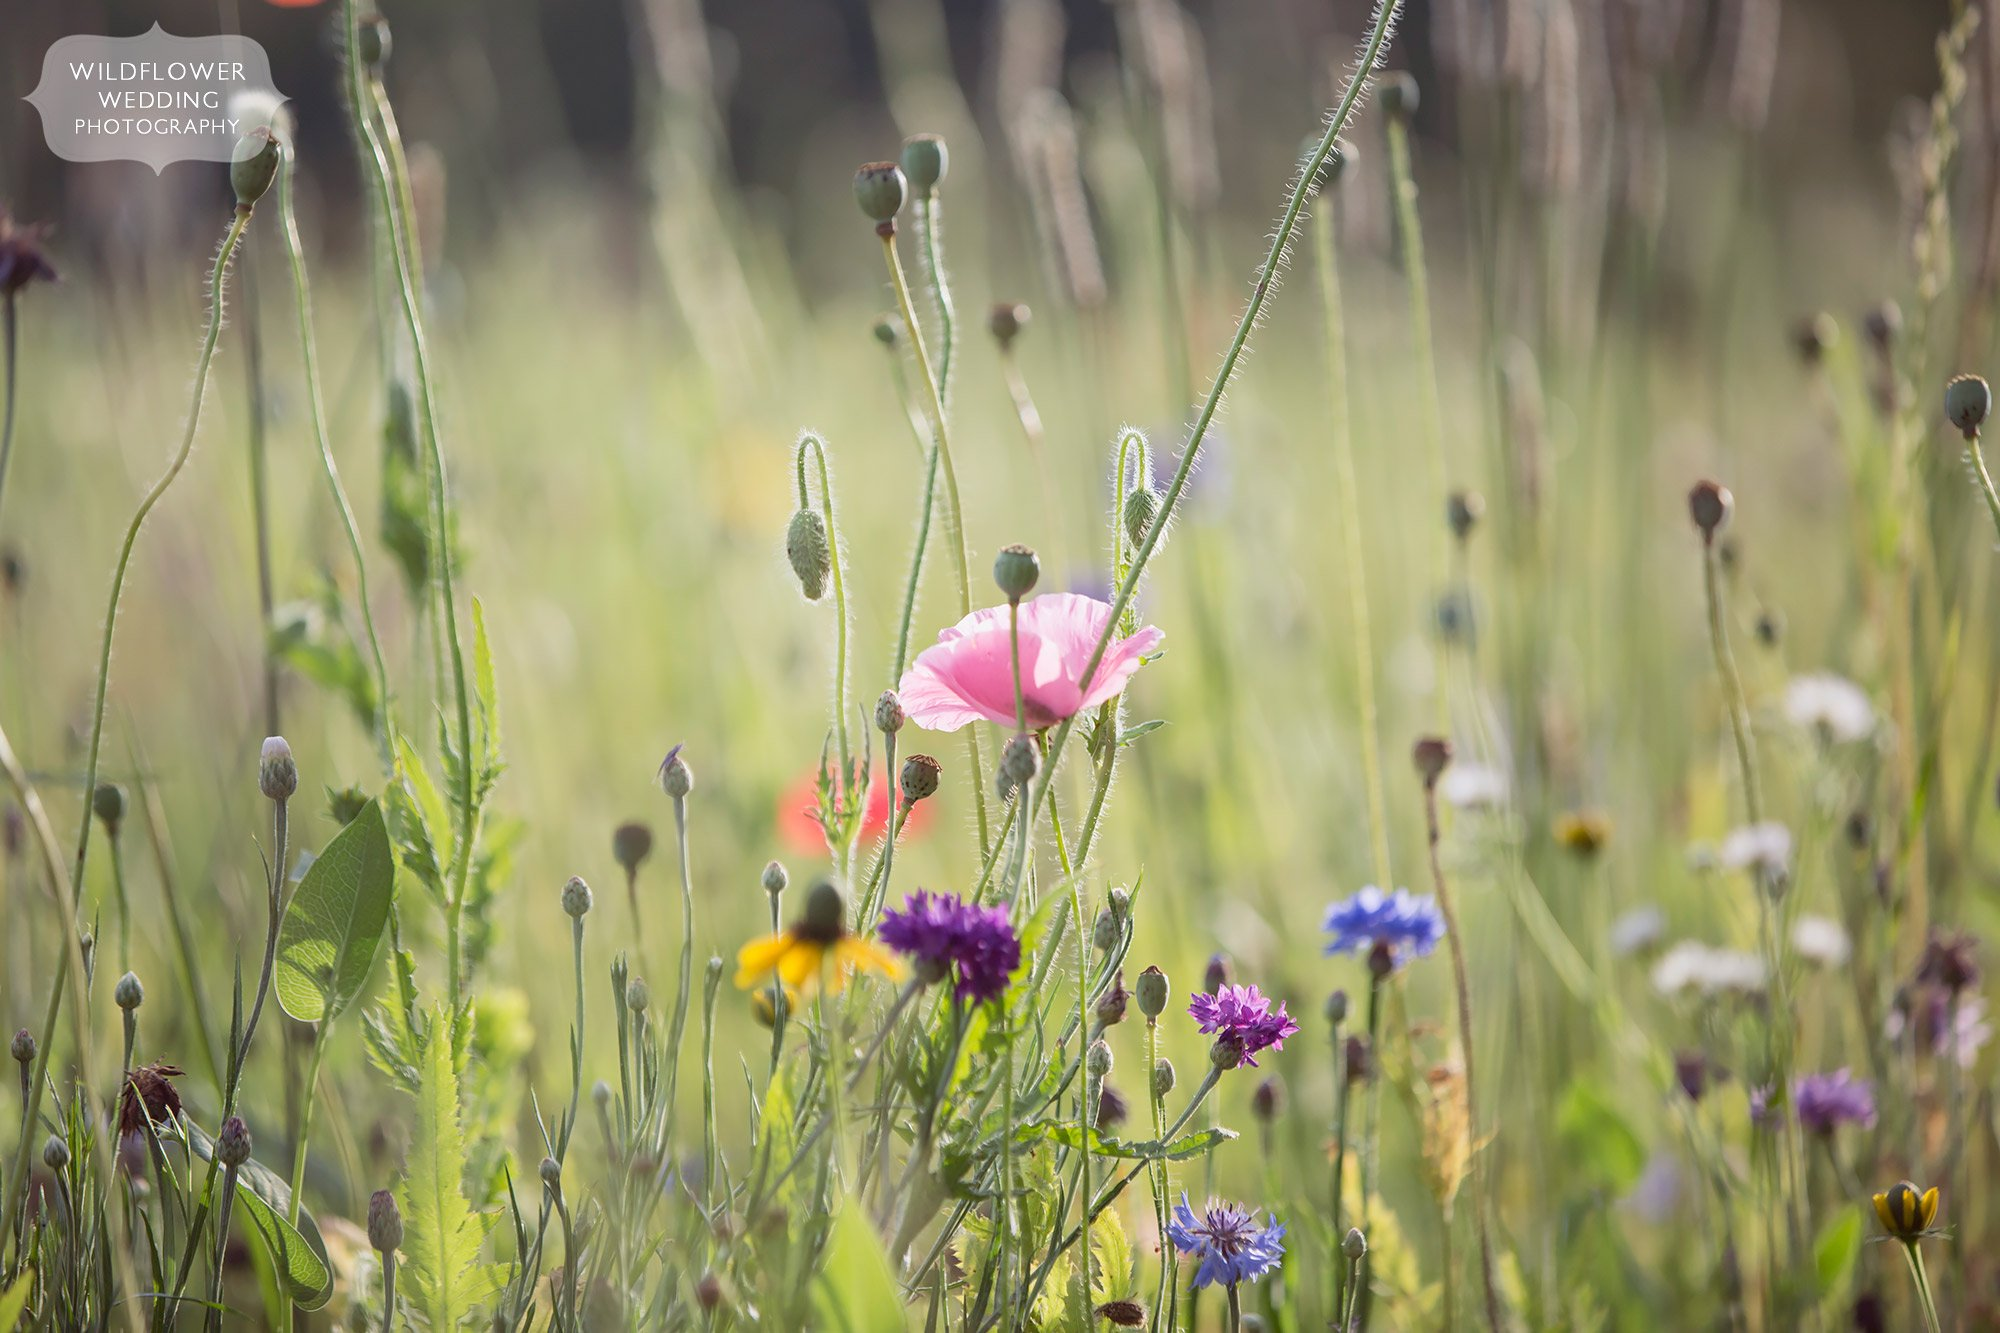 A field of colorful wildflowers behind the barn wedding venue at Kempker's Back 40 in southern MO.